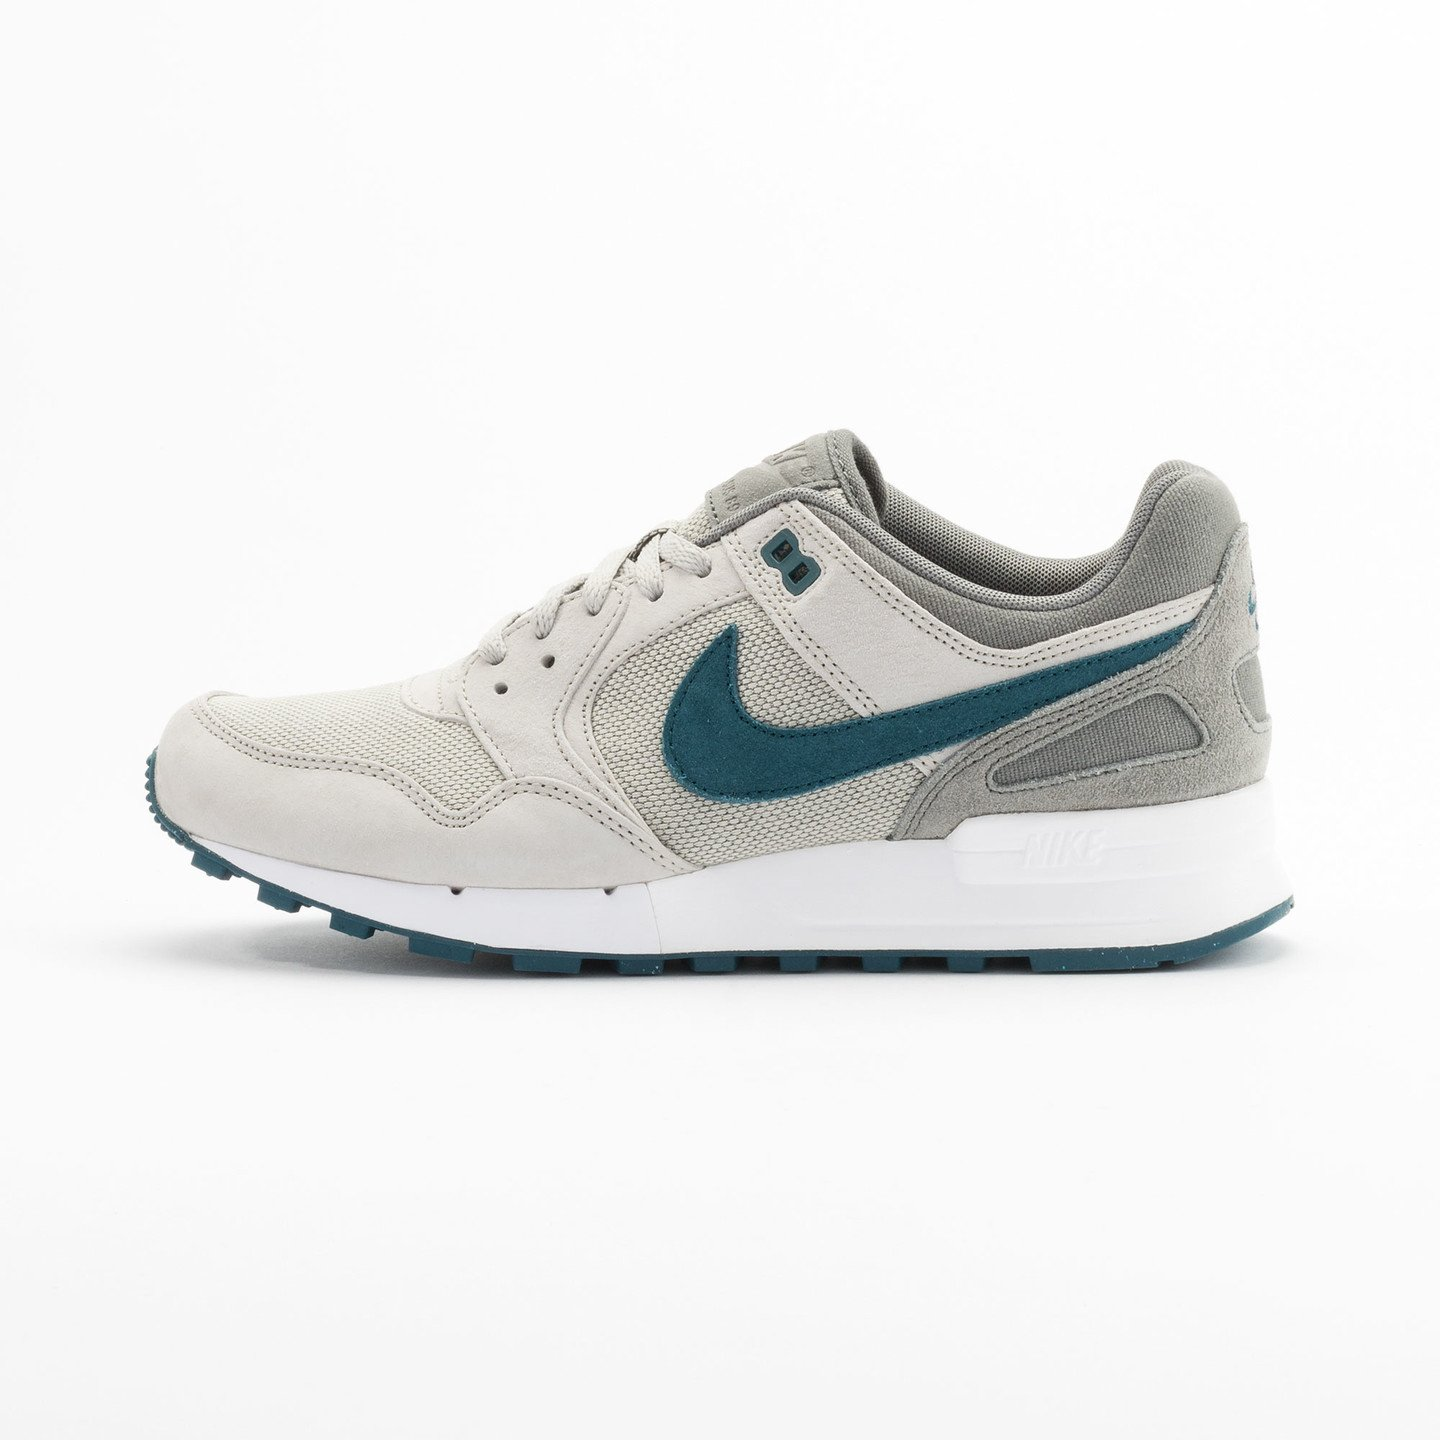 Nike Air Pegasus 89 Premium Lunar Grey / Teal - Tumbled Grey 724269-030-46